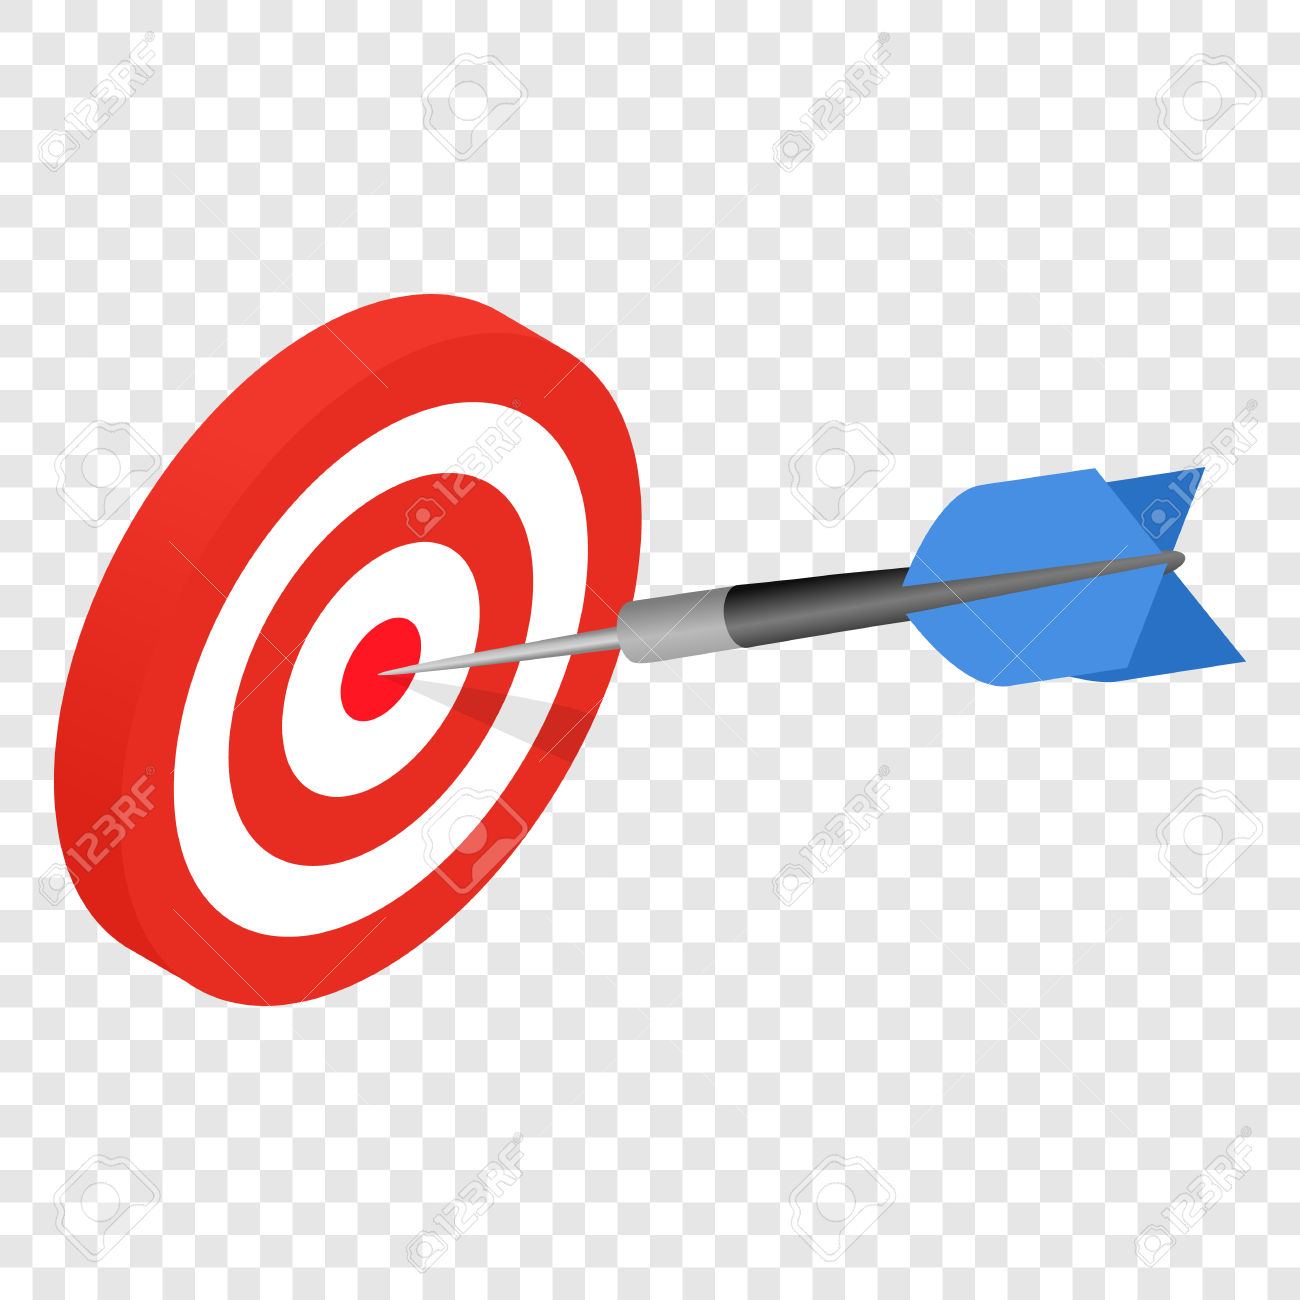 Target clipart no background stock 17,002 Dart Target Stock Illustrations, Cliparts And Royalty Free ... stock